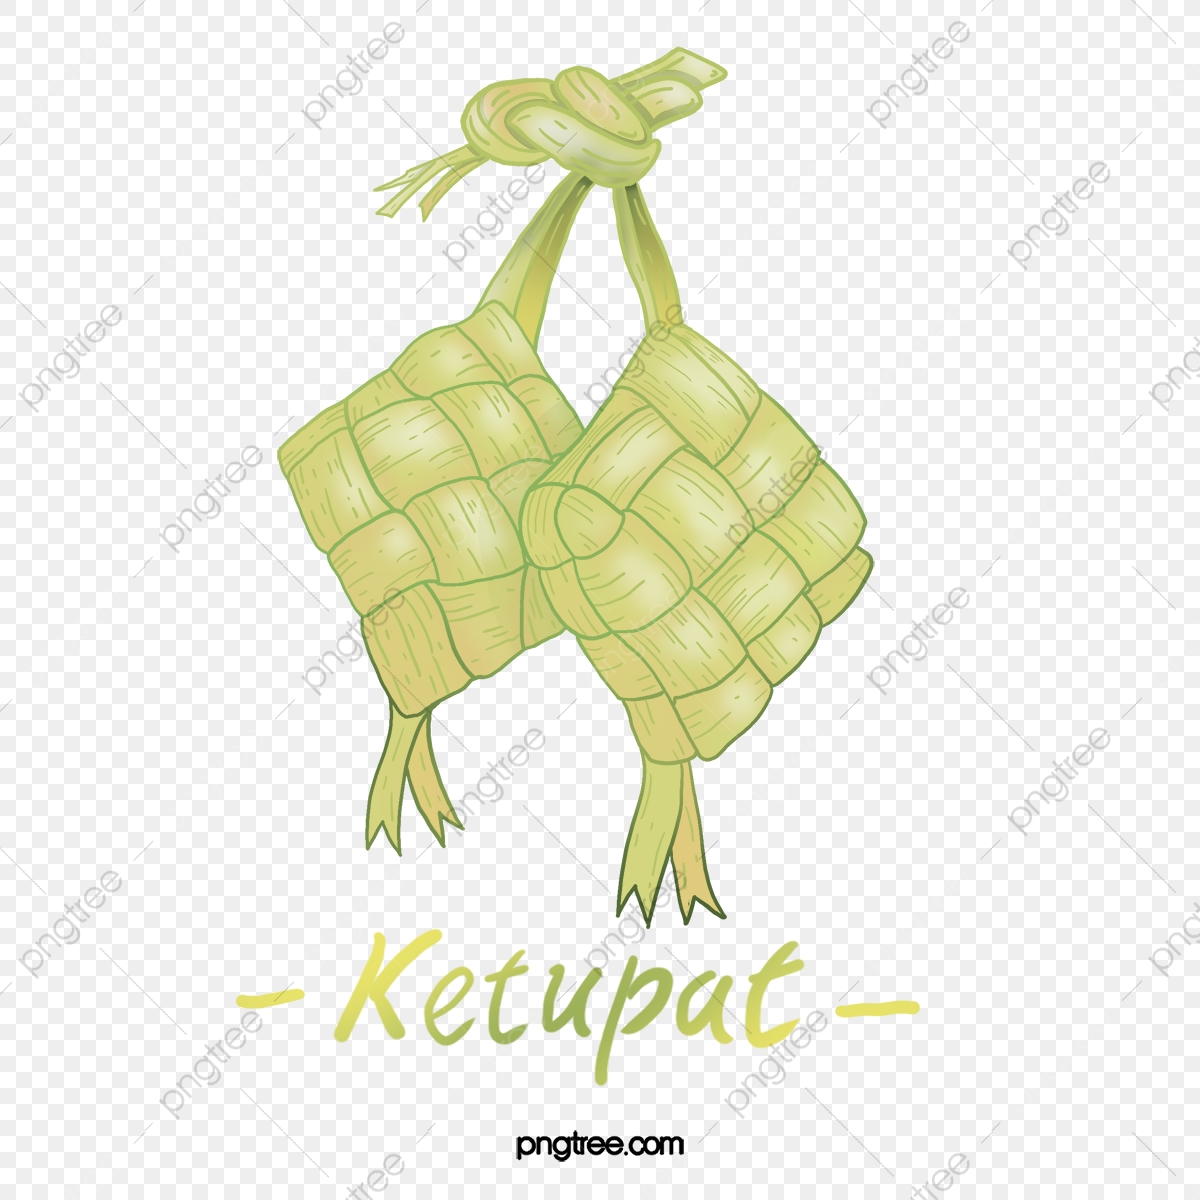 ketupat png images vector and psd files free download on pngtree https pngtree com freepng hand drawn style linear malay brown 5361757 html